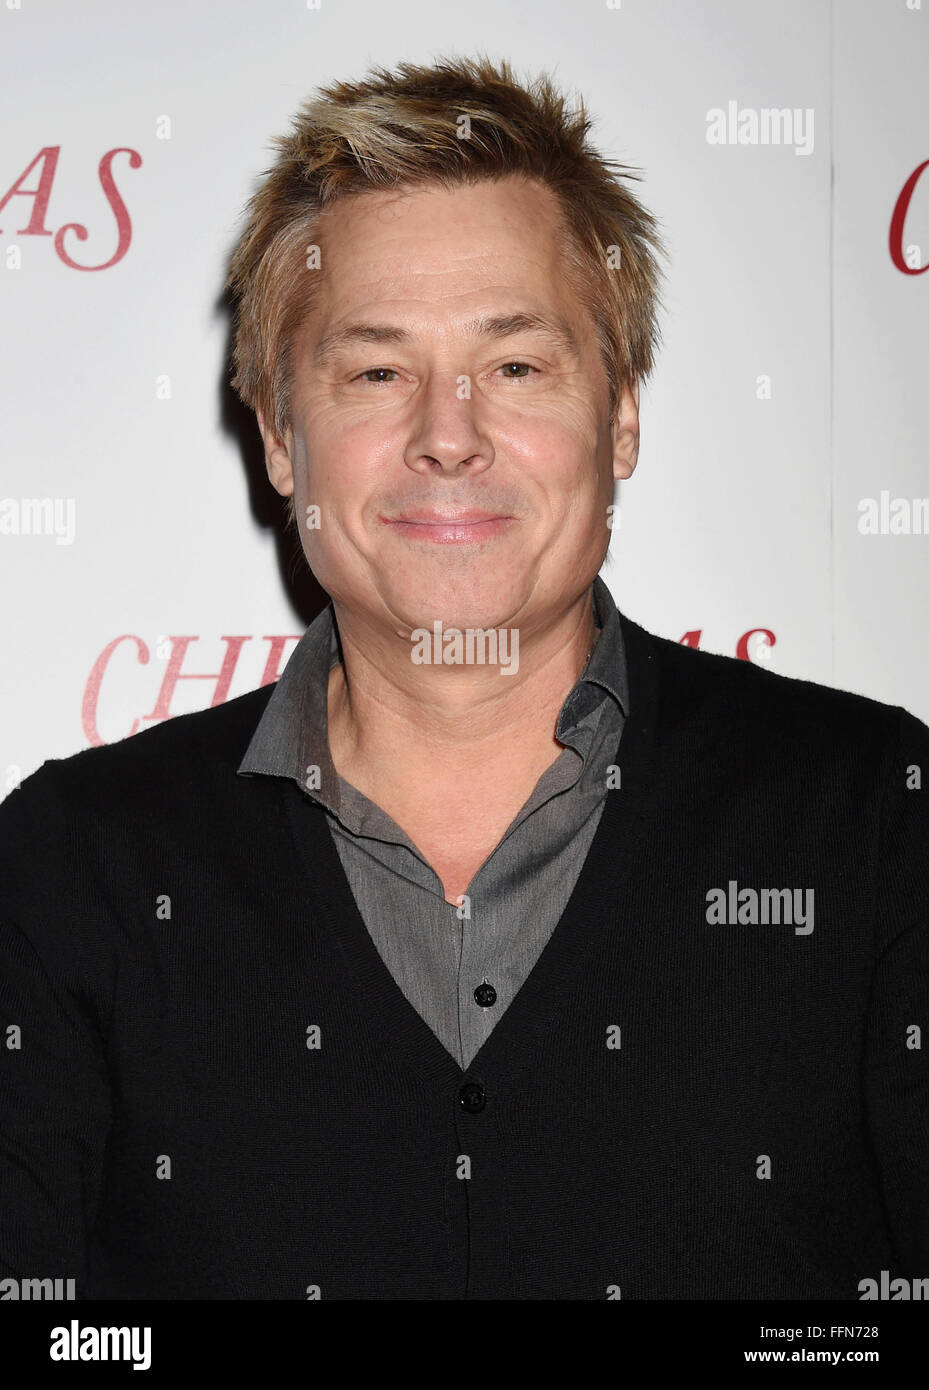 Radio/TV personality Kato Kaelin arrives at the premiere of Unstuck's 'Christmas Eve' at the ArcLight - Stock Image